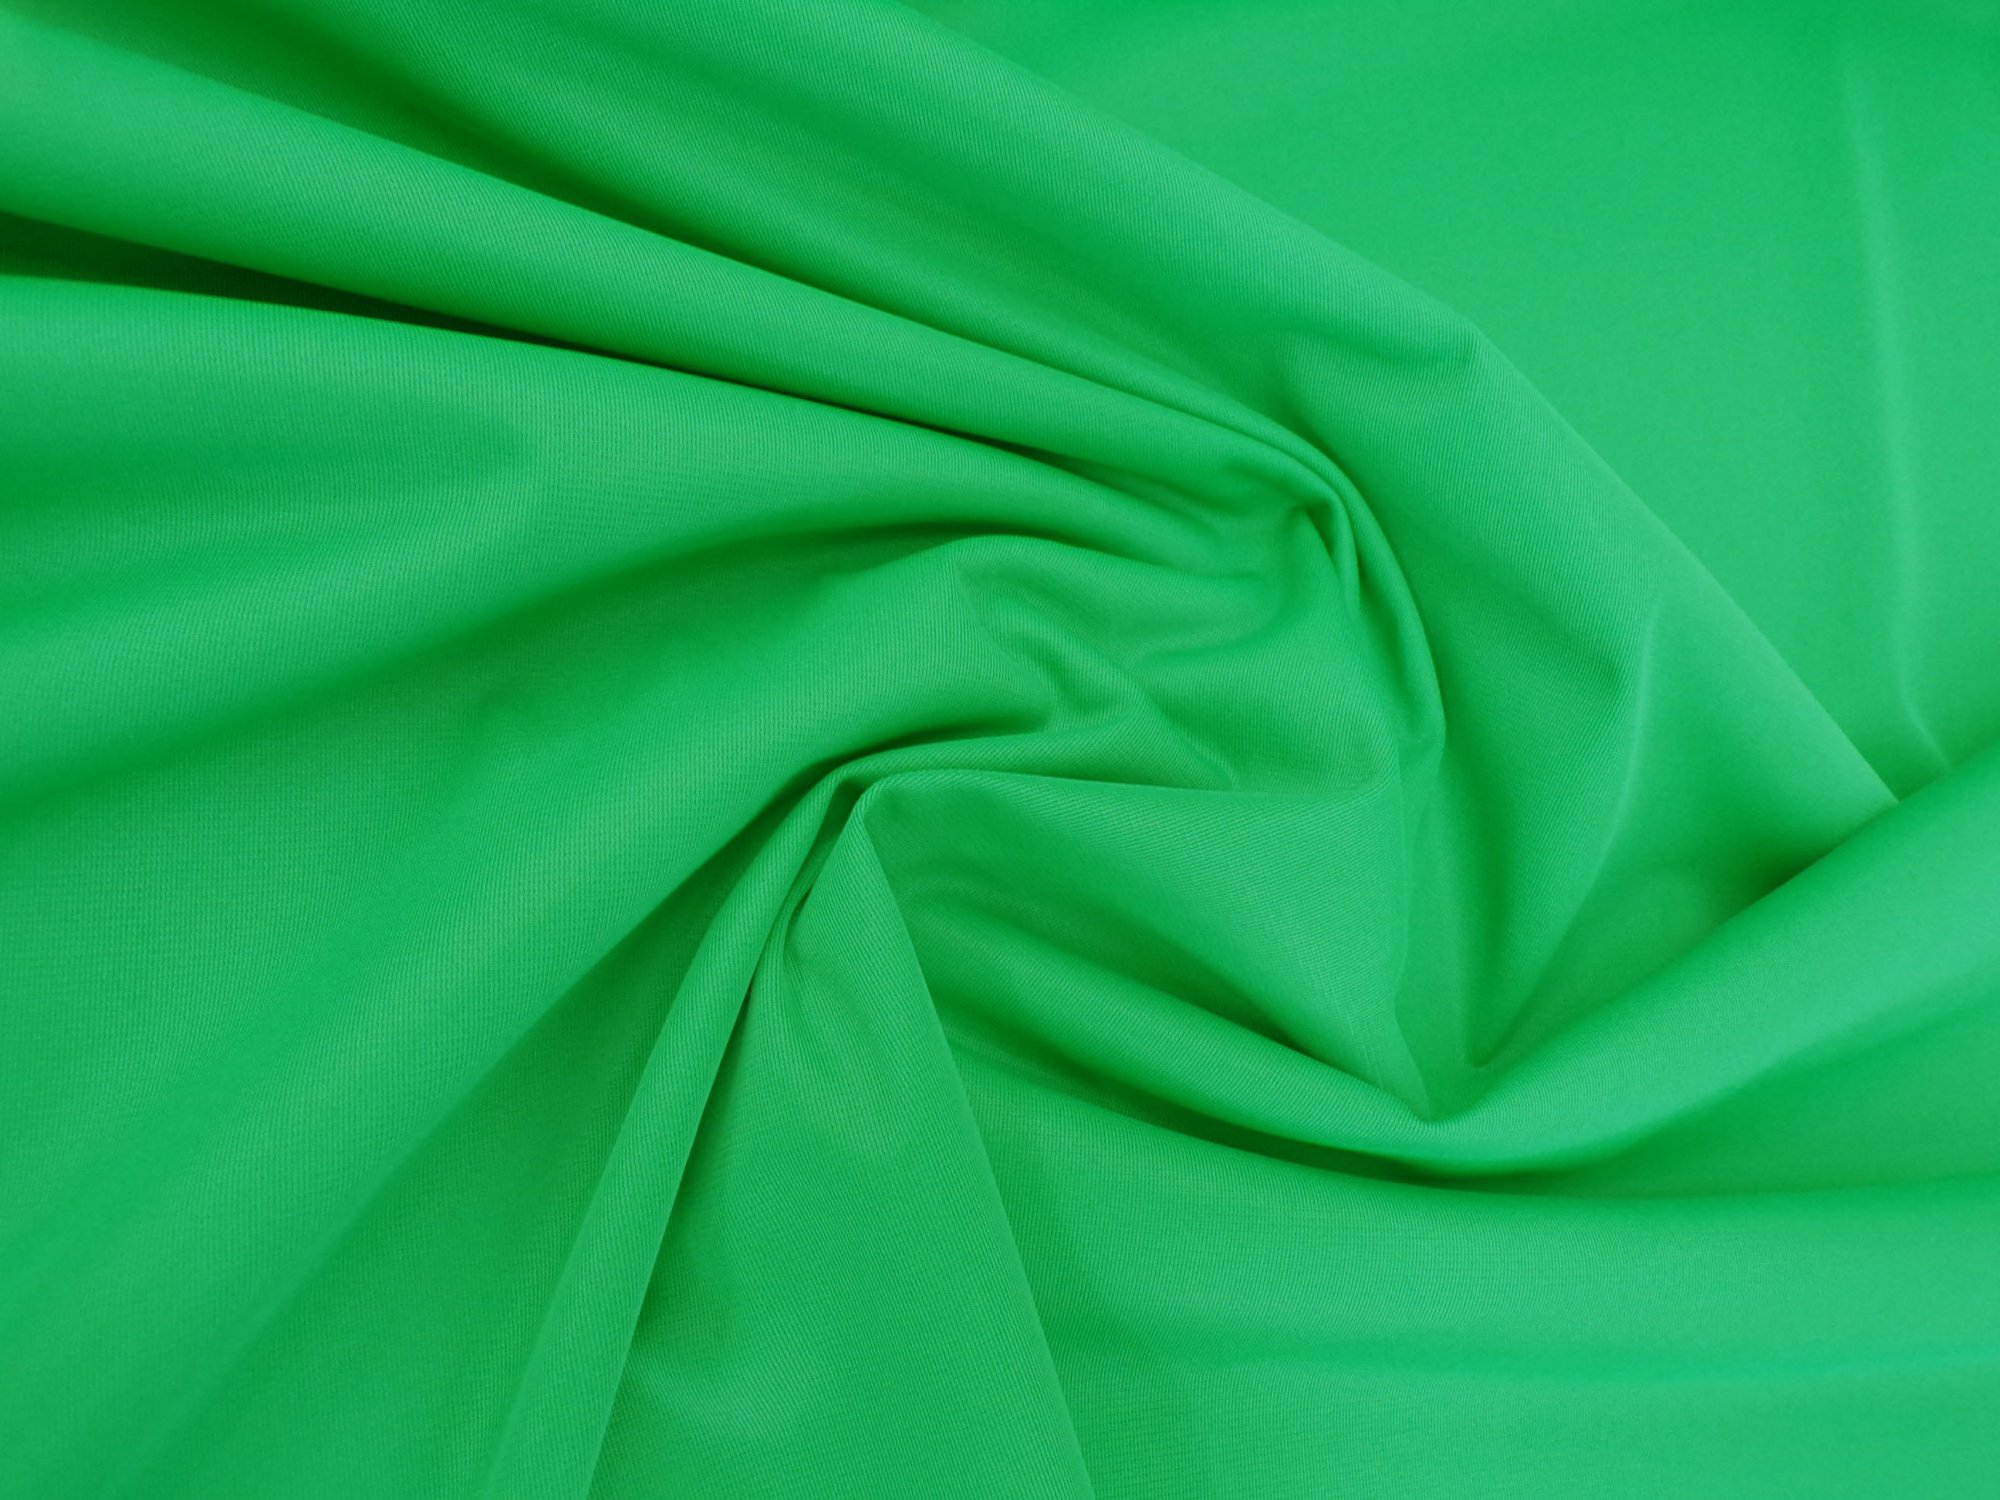 40 Denier Nylon Tricot - Green